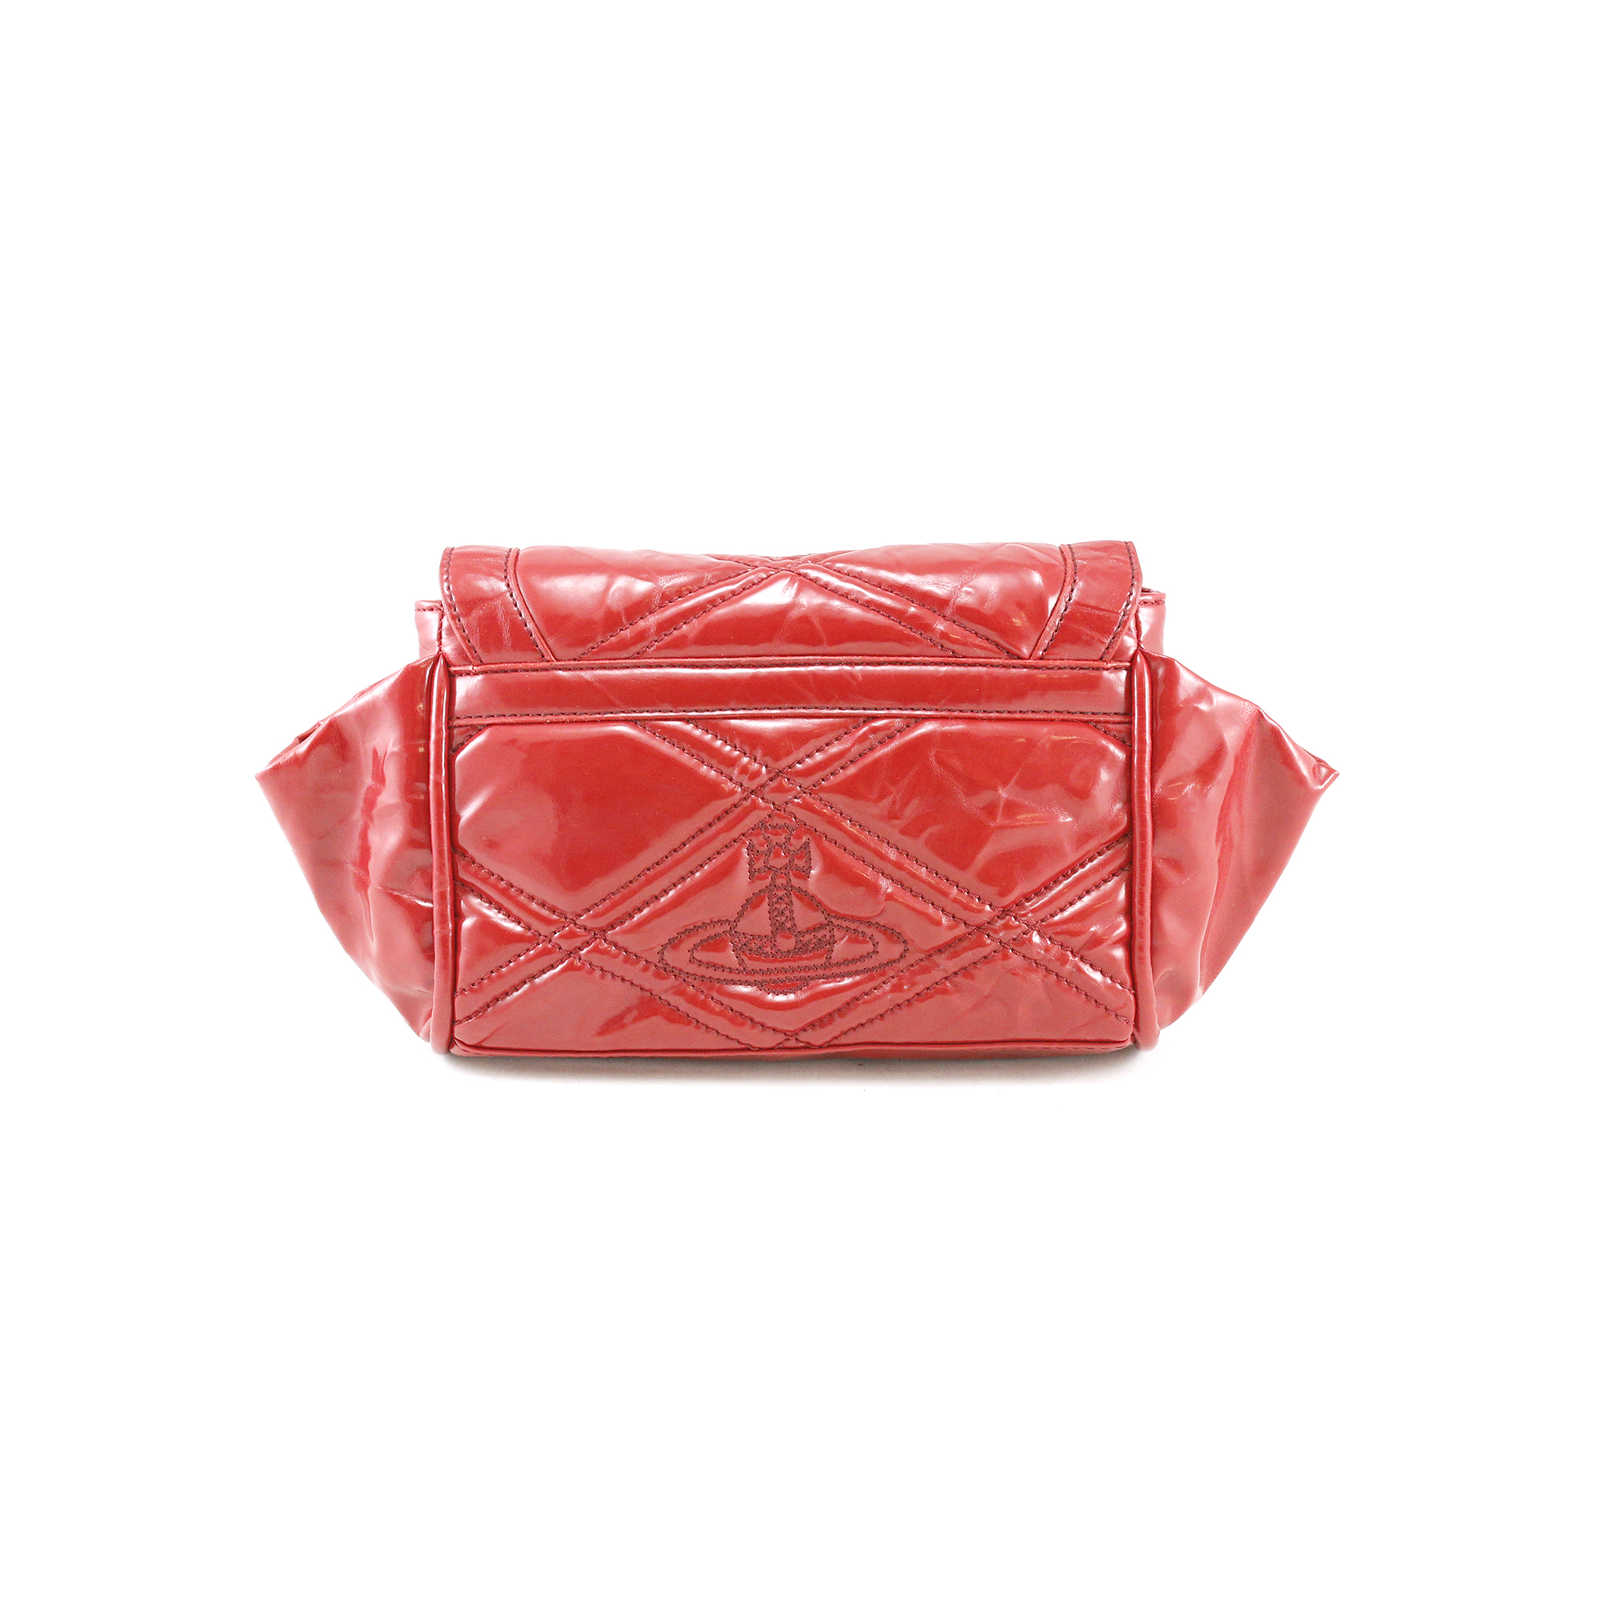 05e04a40b7 ... Authentic Second Hand Vivienne Westwood Patent Leather Clutch  (PSS-005-00004) ...